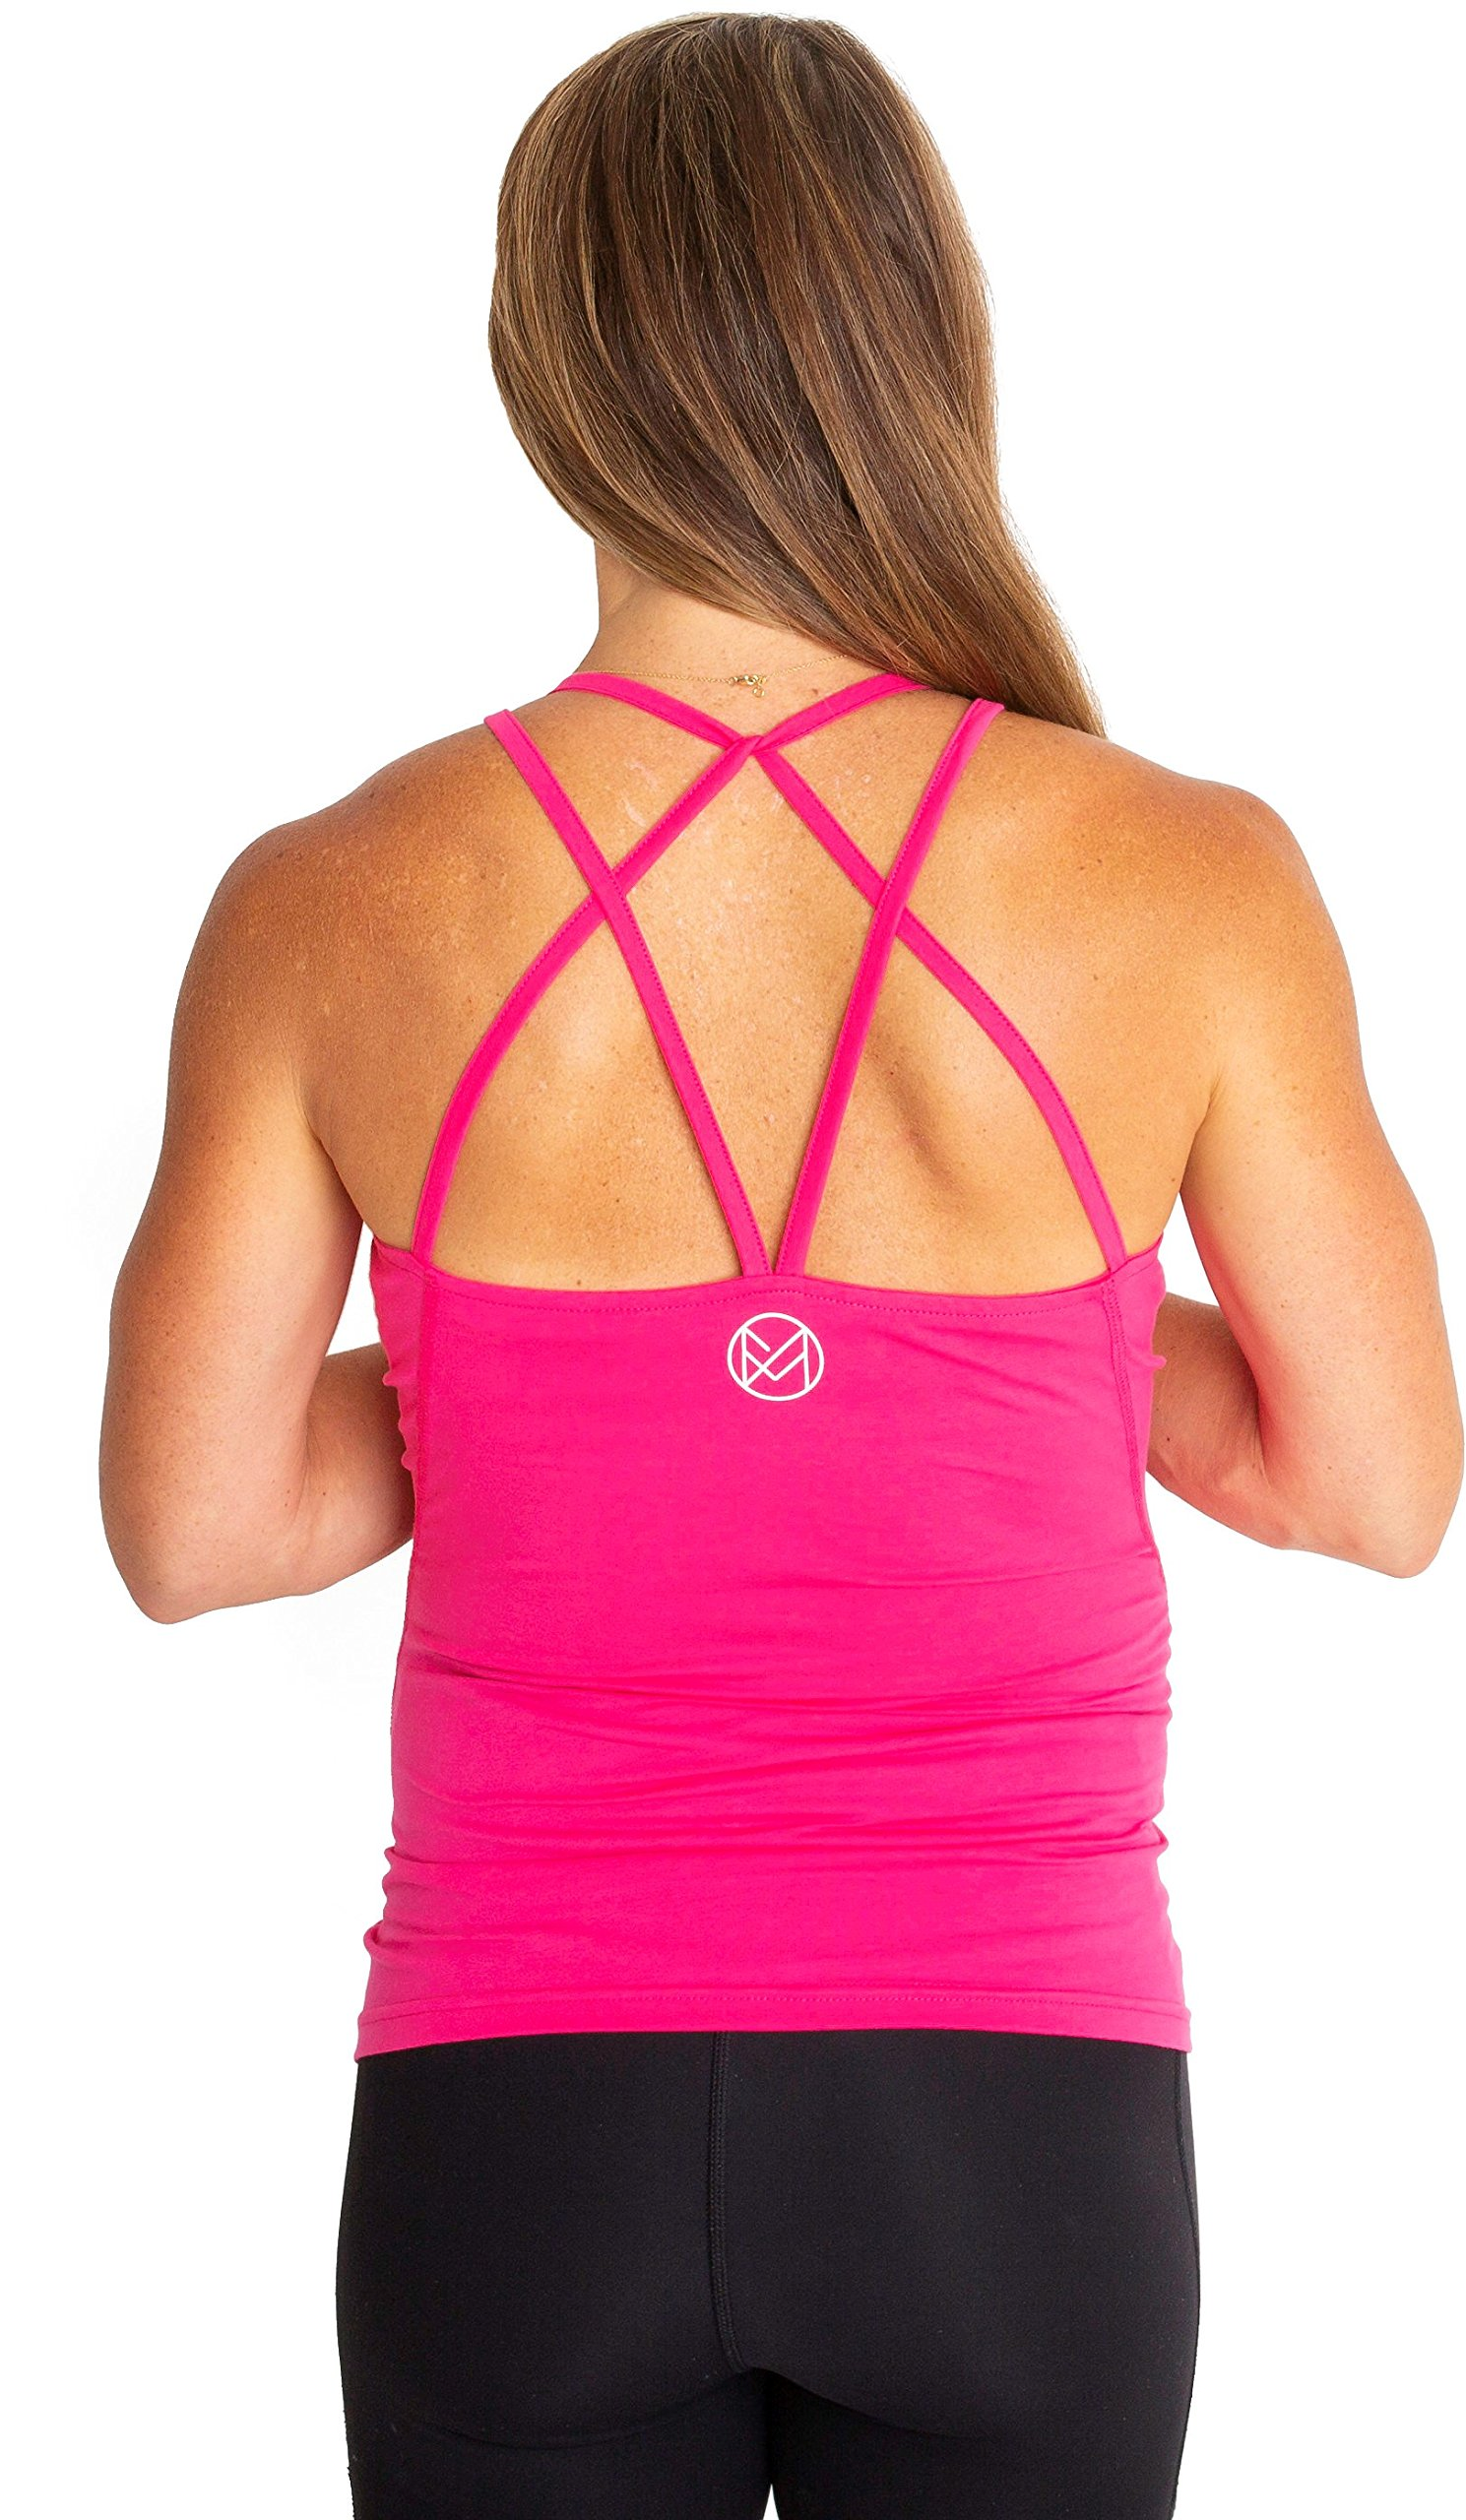 movemama Maternity to Postpartum Workout and Yoga Top with Cross Back Detail, Shelf Bra and Removable Padding (Pink, Large)